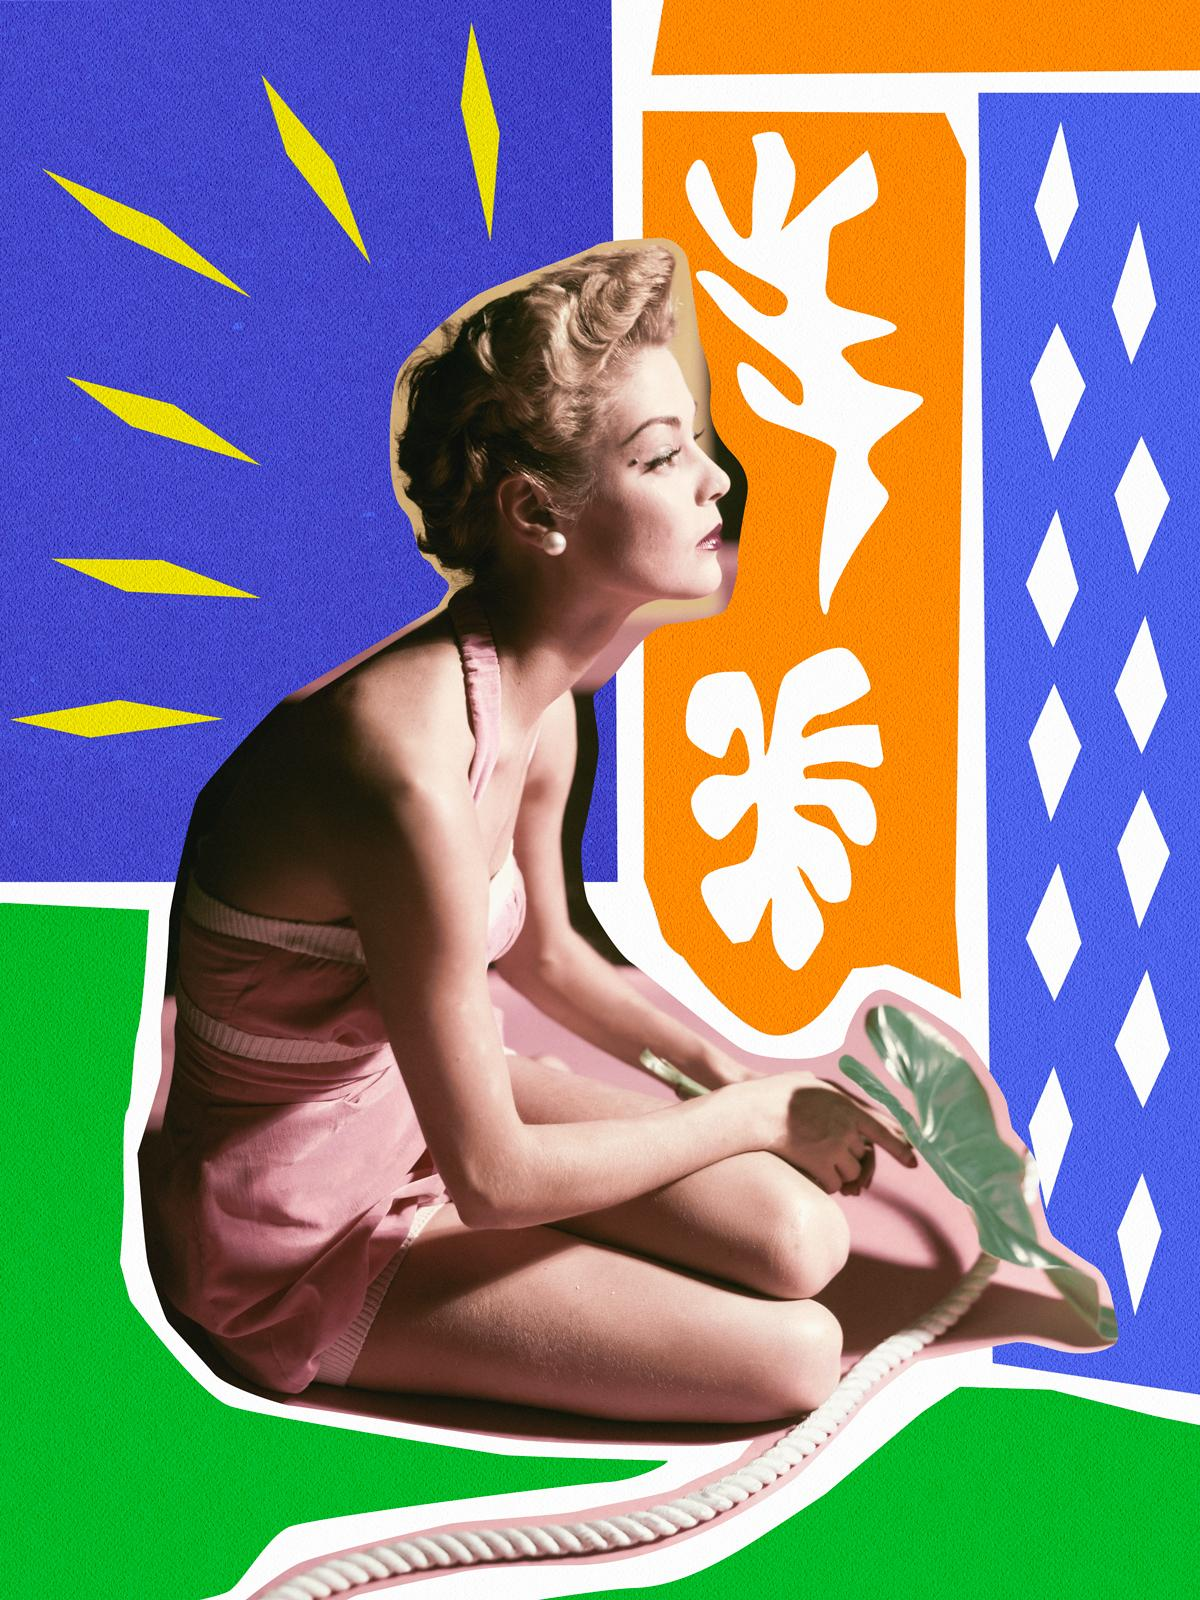 If Matisse ever met the Vogue archives, this is probably what would have happened: http://t.co/70PFfGt5iU http://t.co/uGlhMI8KTp